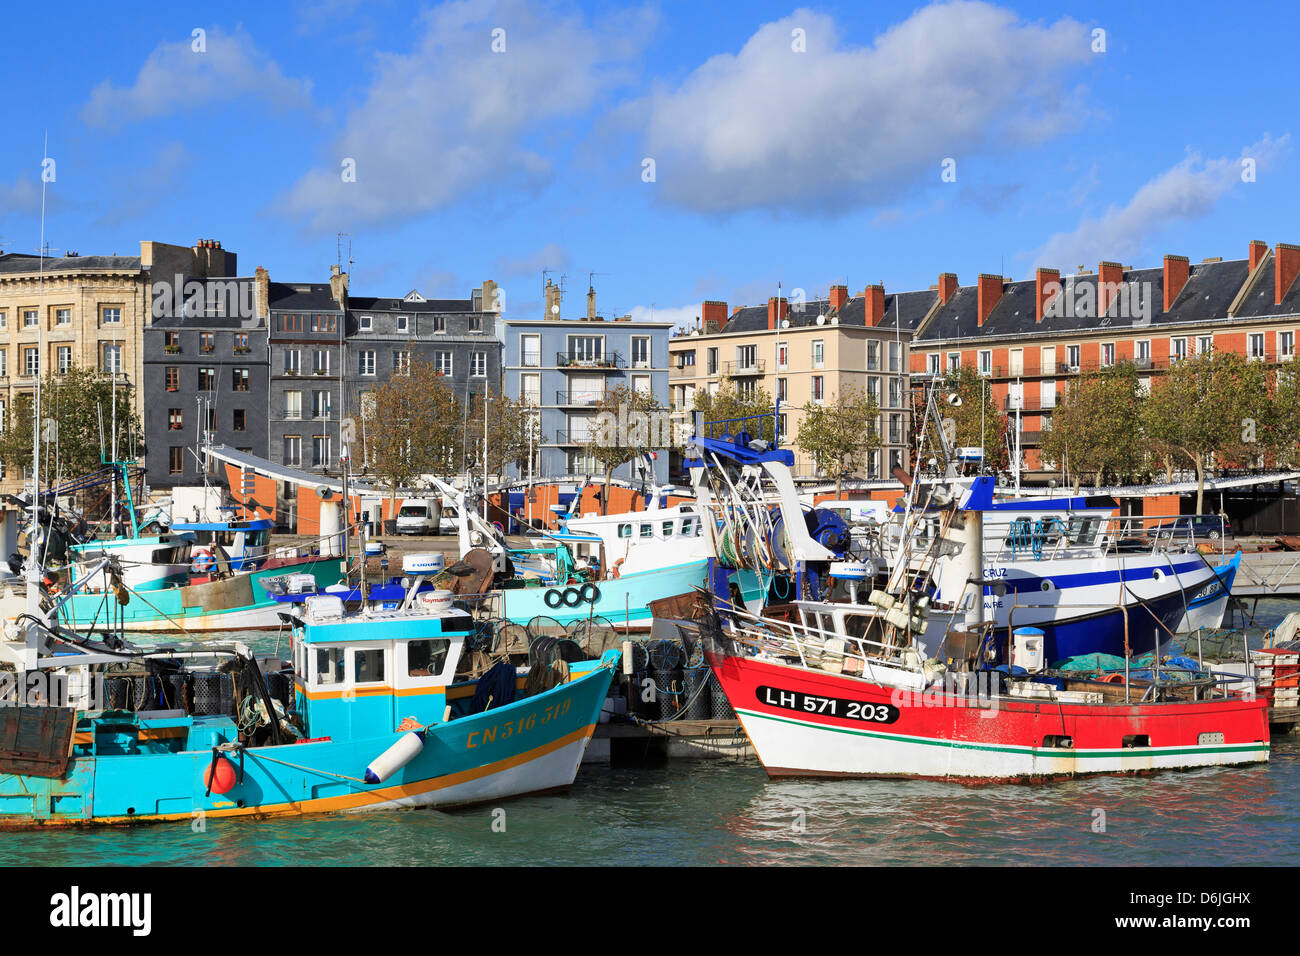 Fishing fleet in Le Havre, Normandy, France, Europe - Stock Image